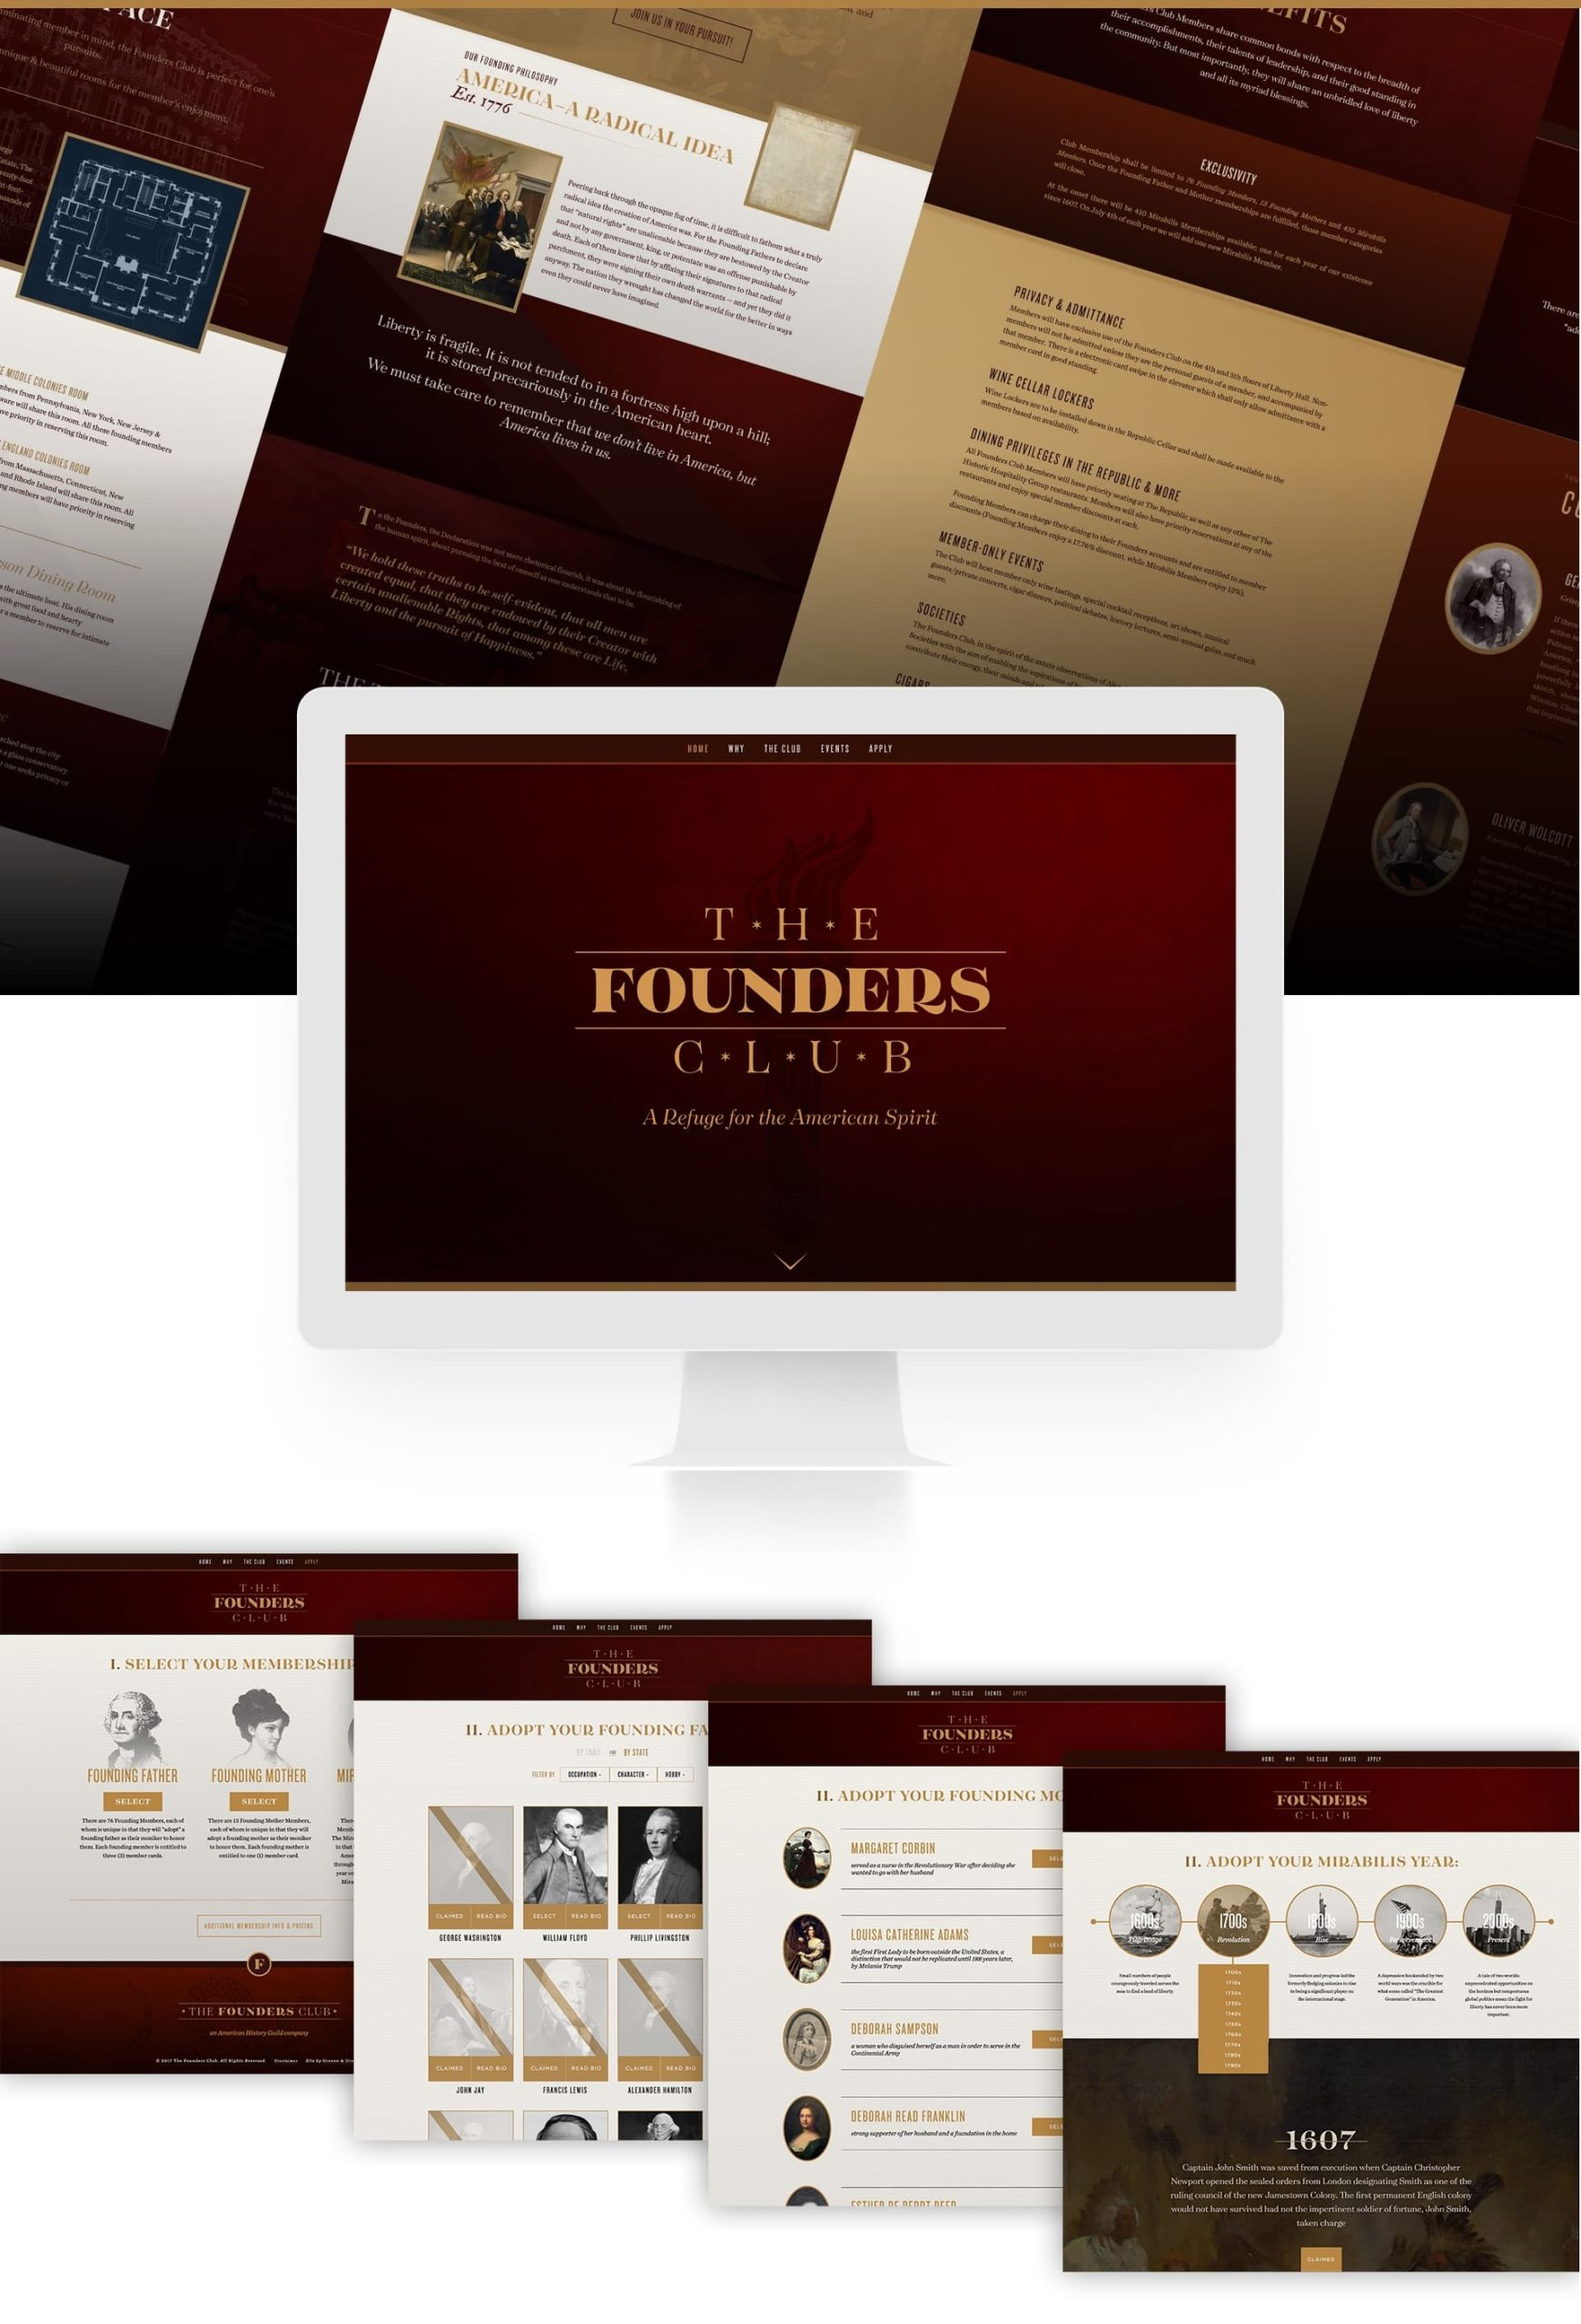 fc web designs squashed scaled